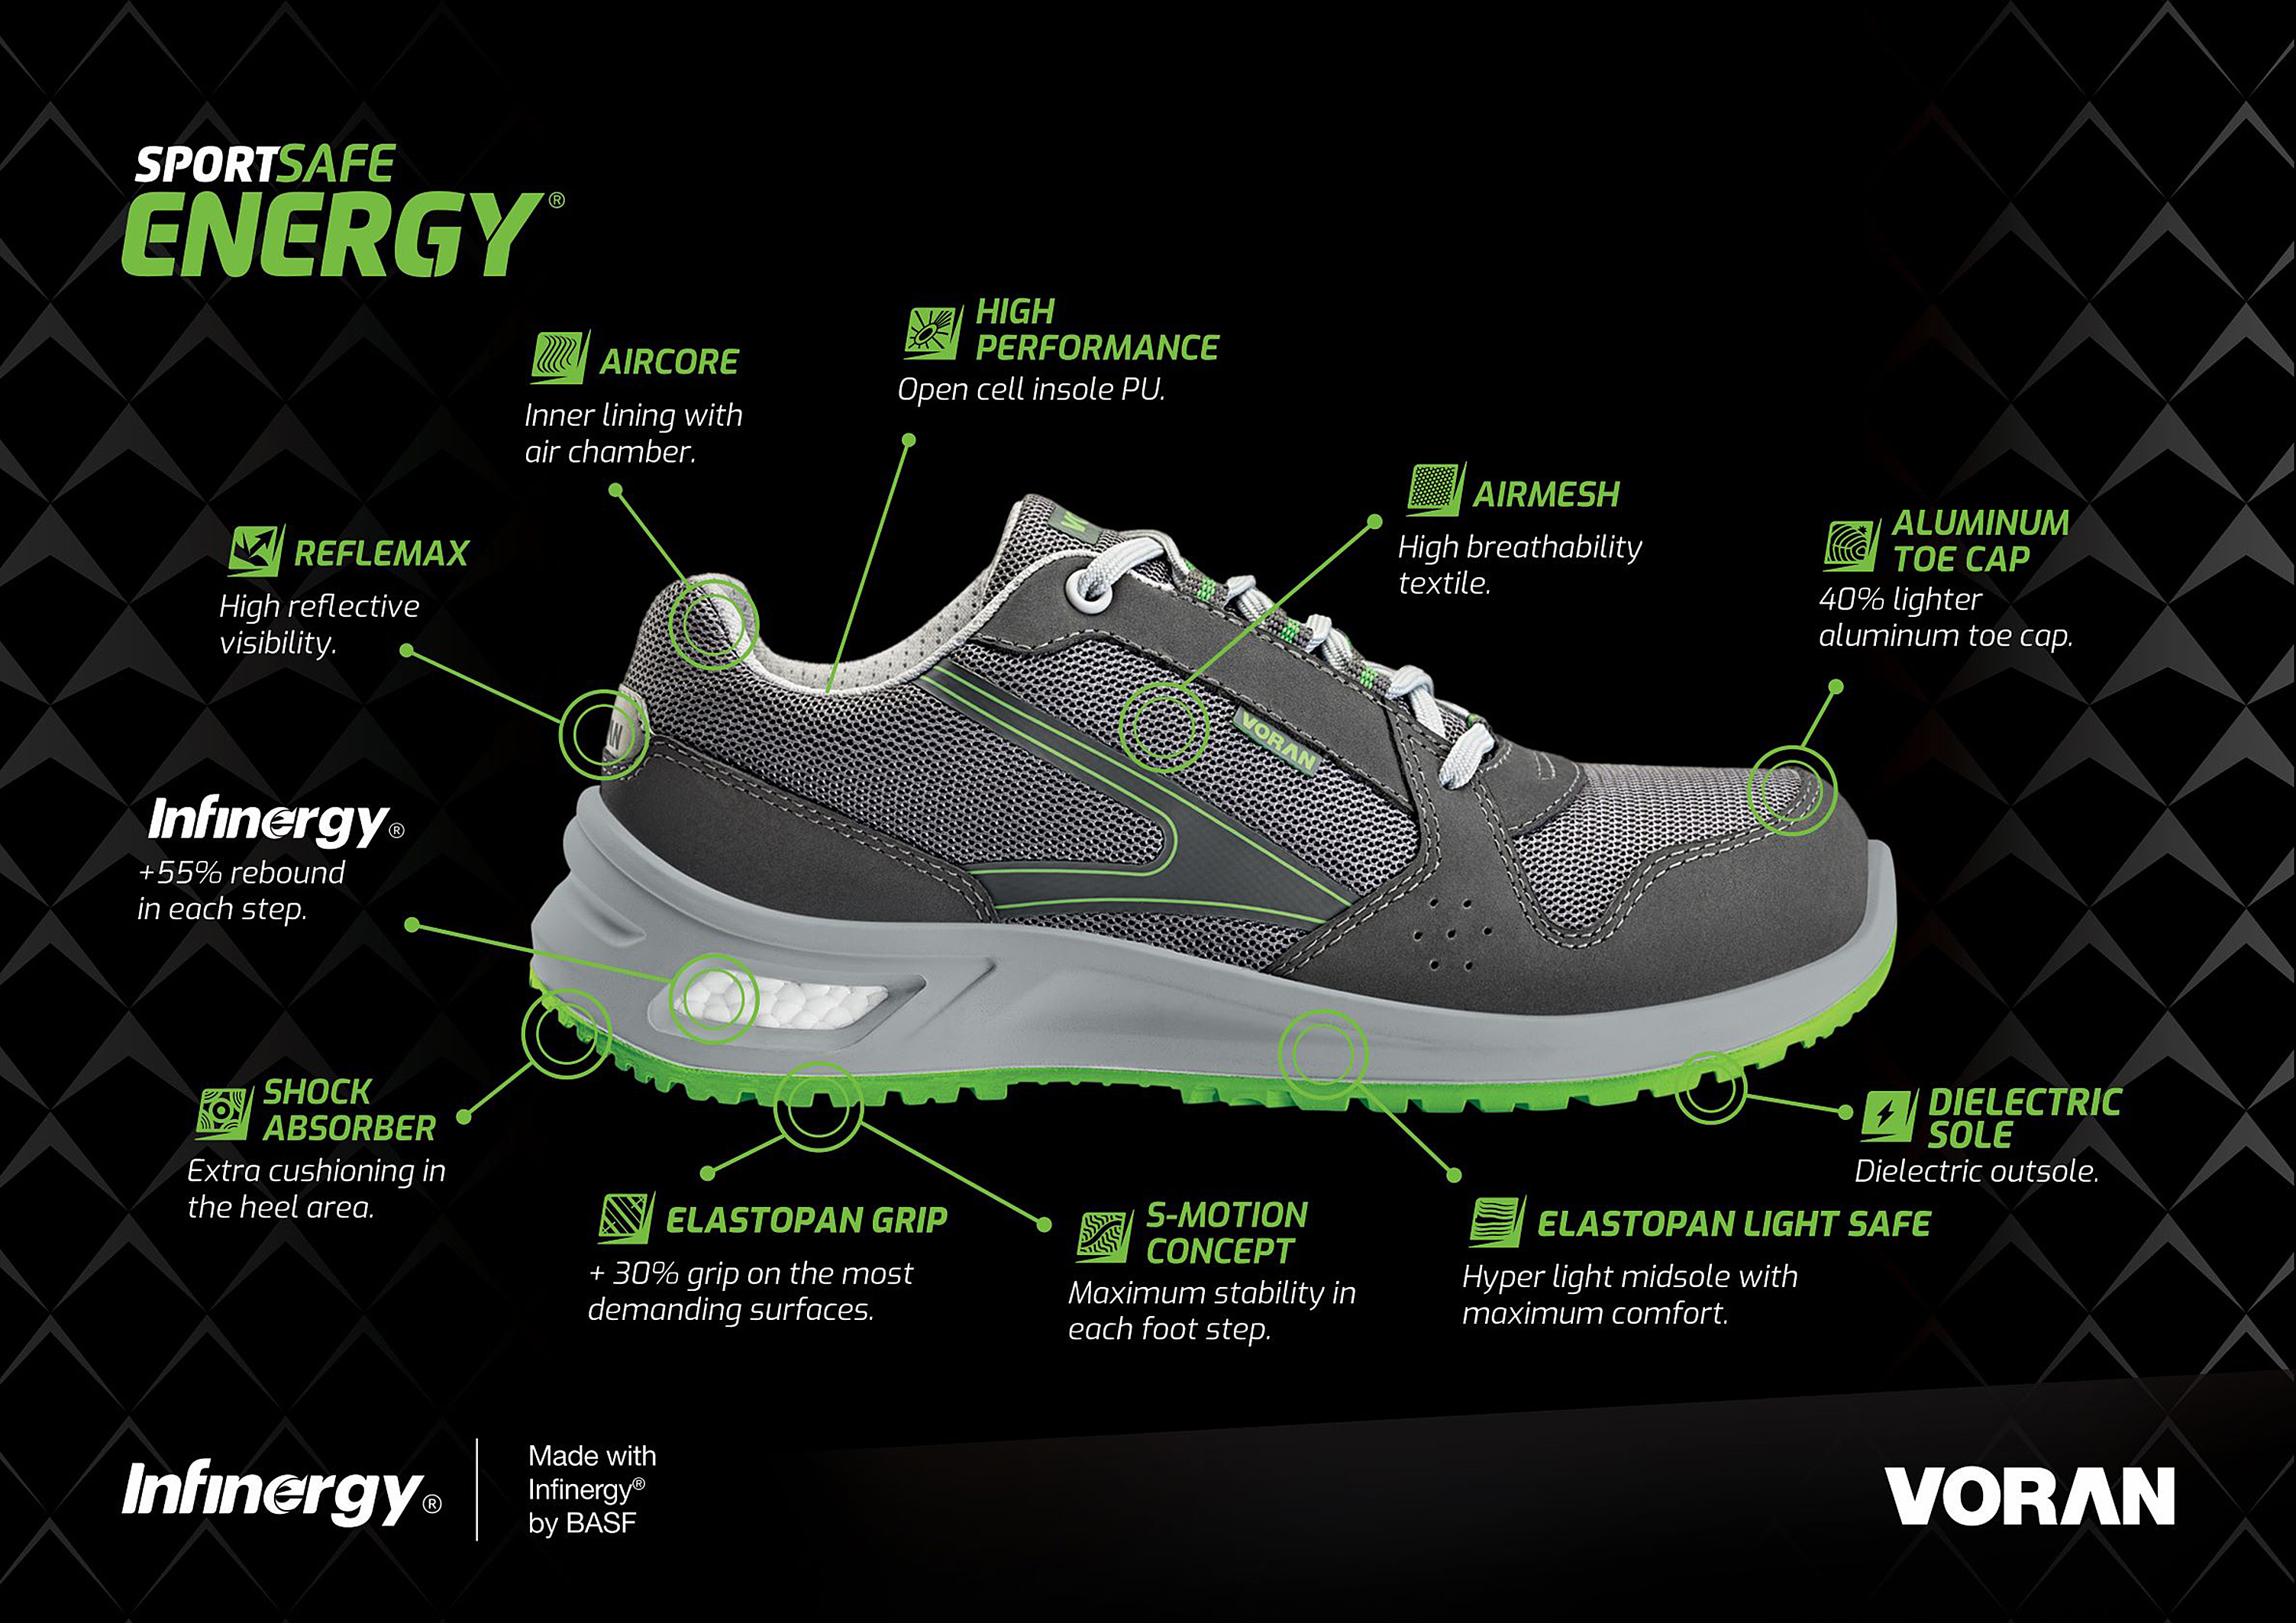 Voran SportSafe shoes featuring Infinergy and Elastopan PU from BASF (Source: BASF)